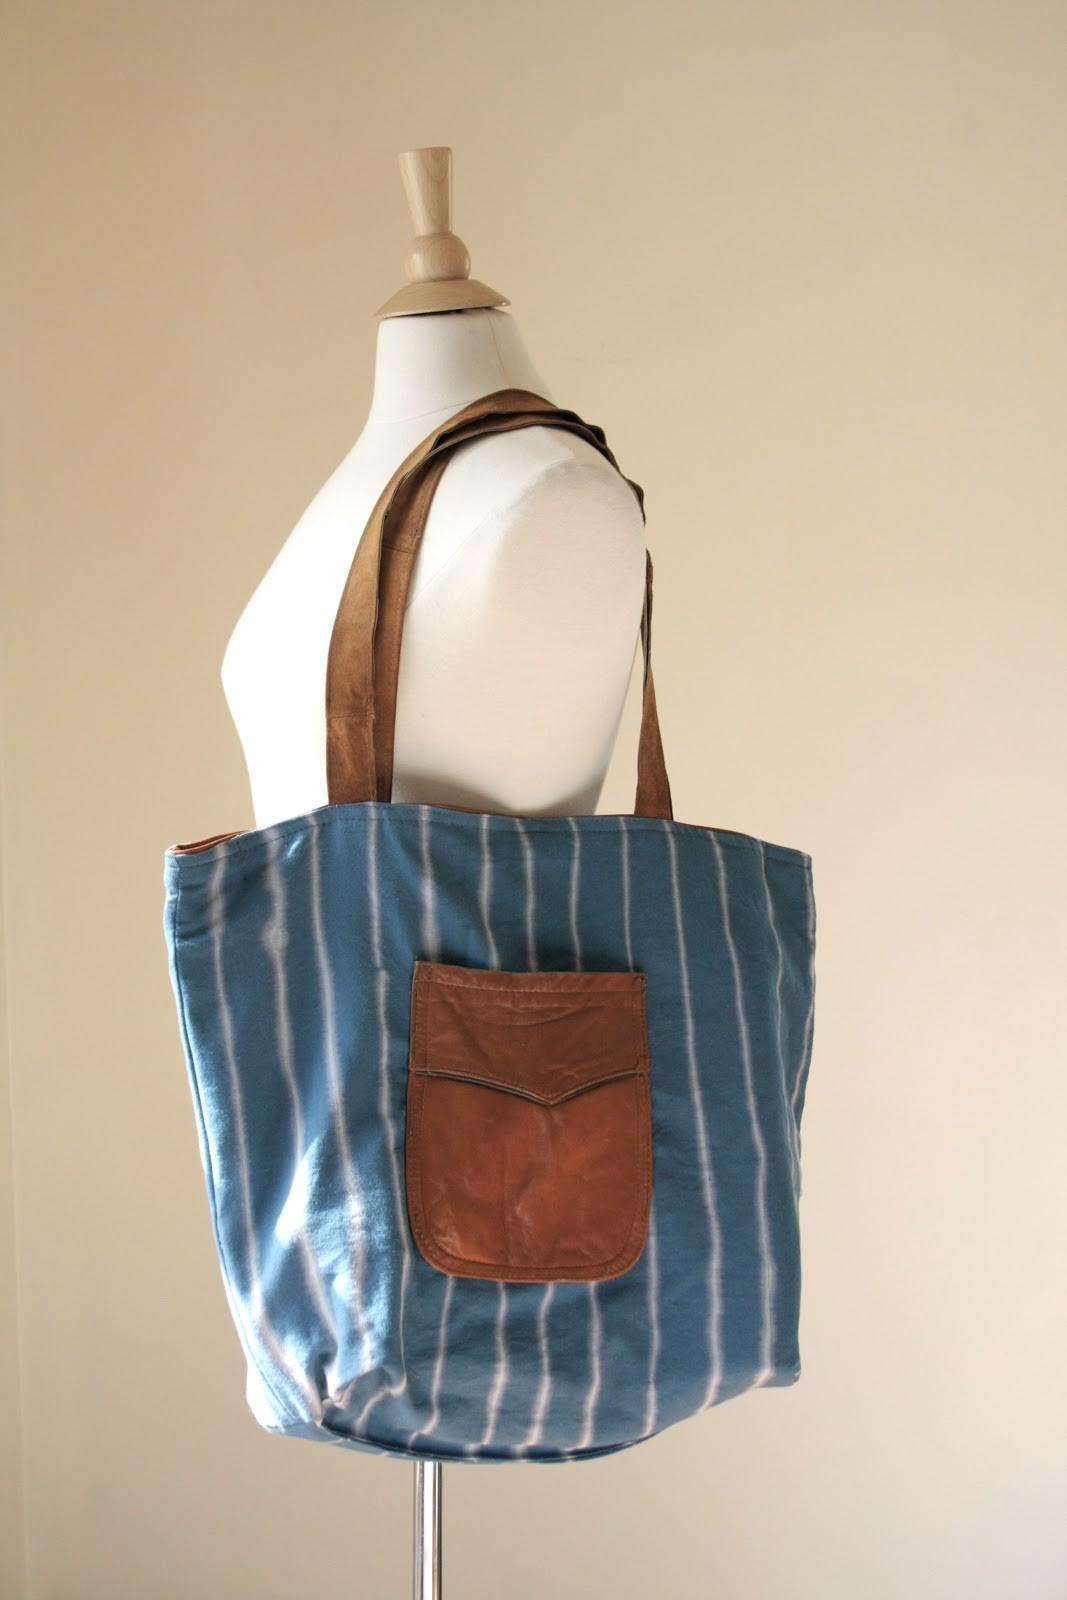 Dusty Society Diy Leather Tote Bag